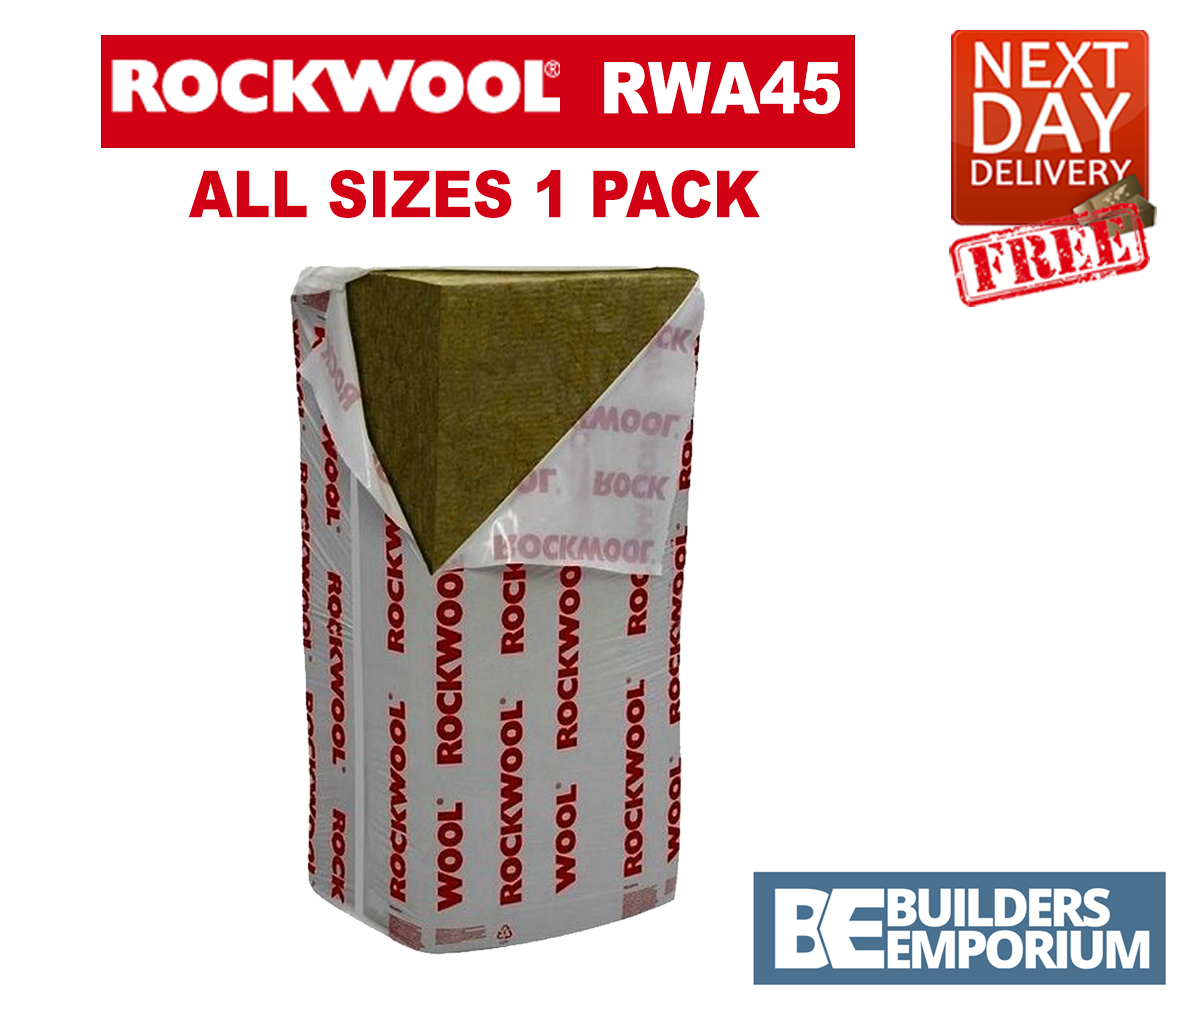 Rockwool Rwa45 Acoustic Sound Insulation 50 75 And 100mm